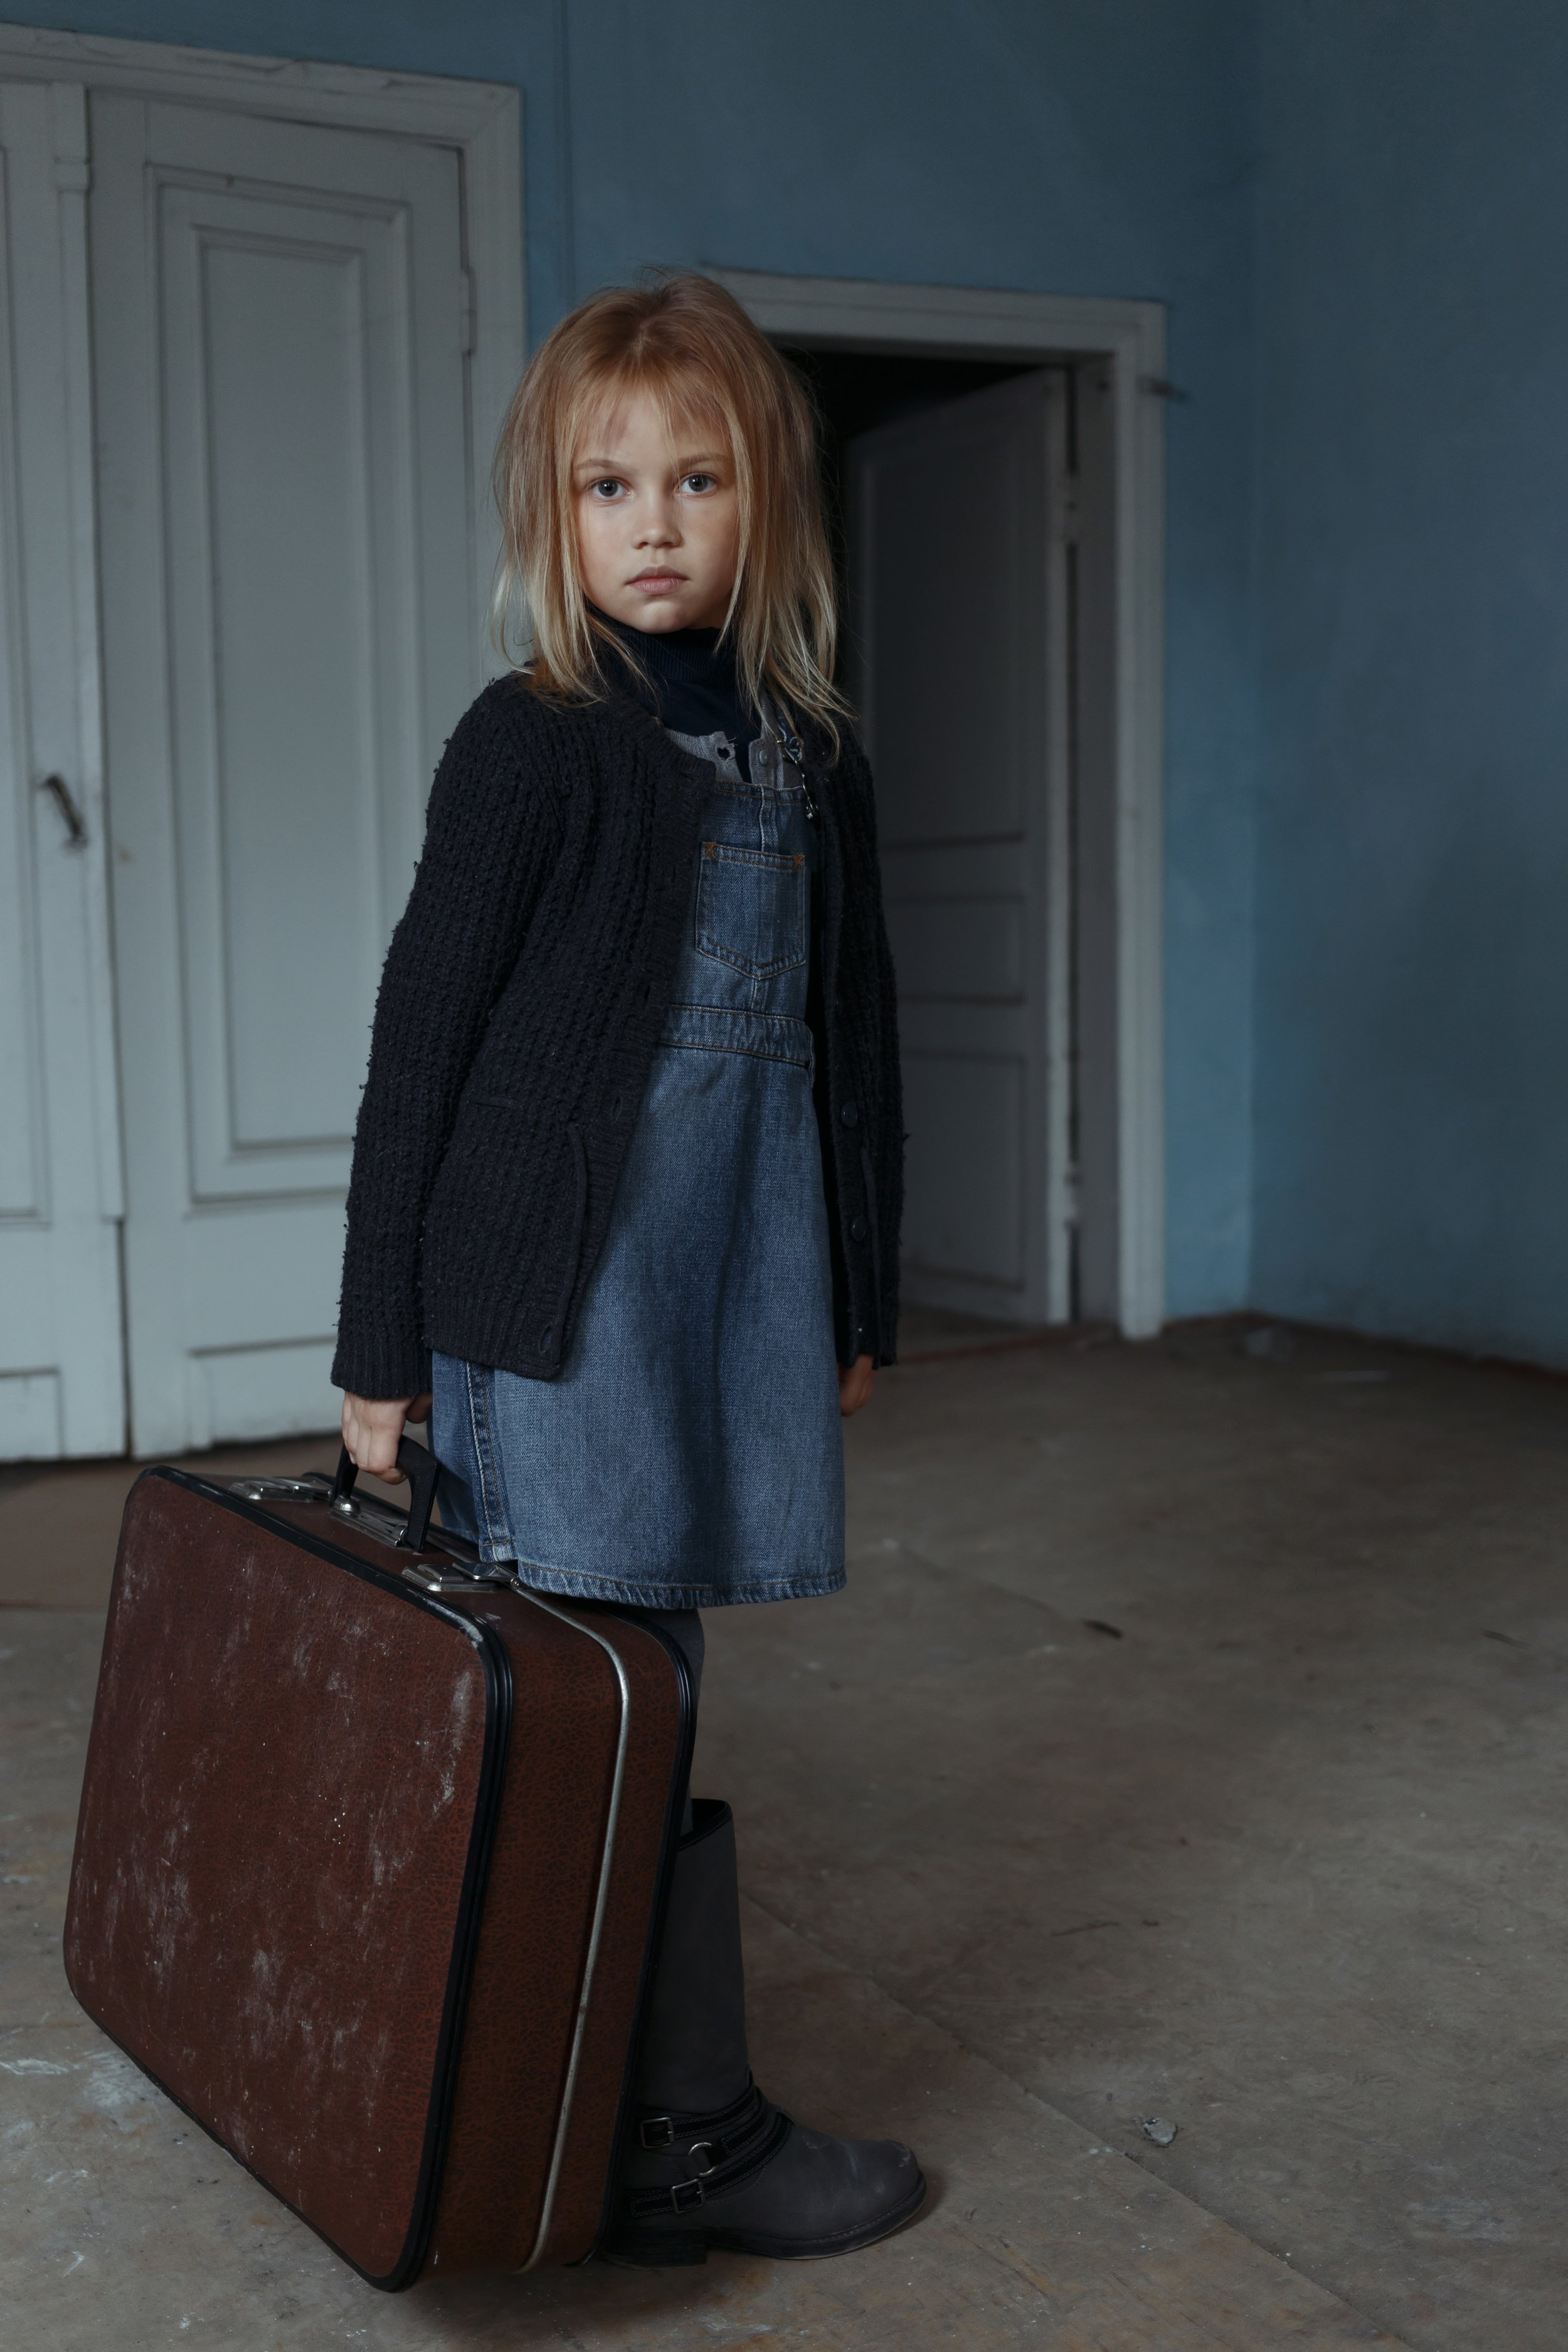 Girl With Suitcase.jpg